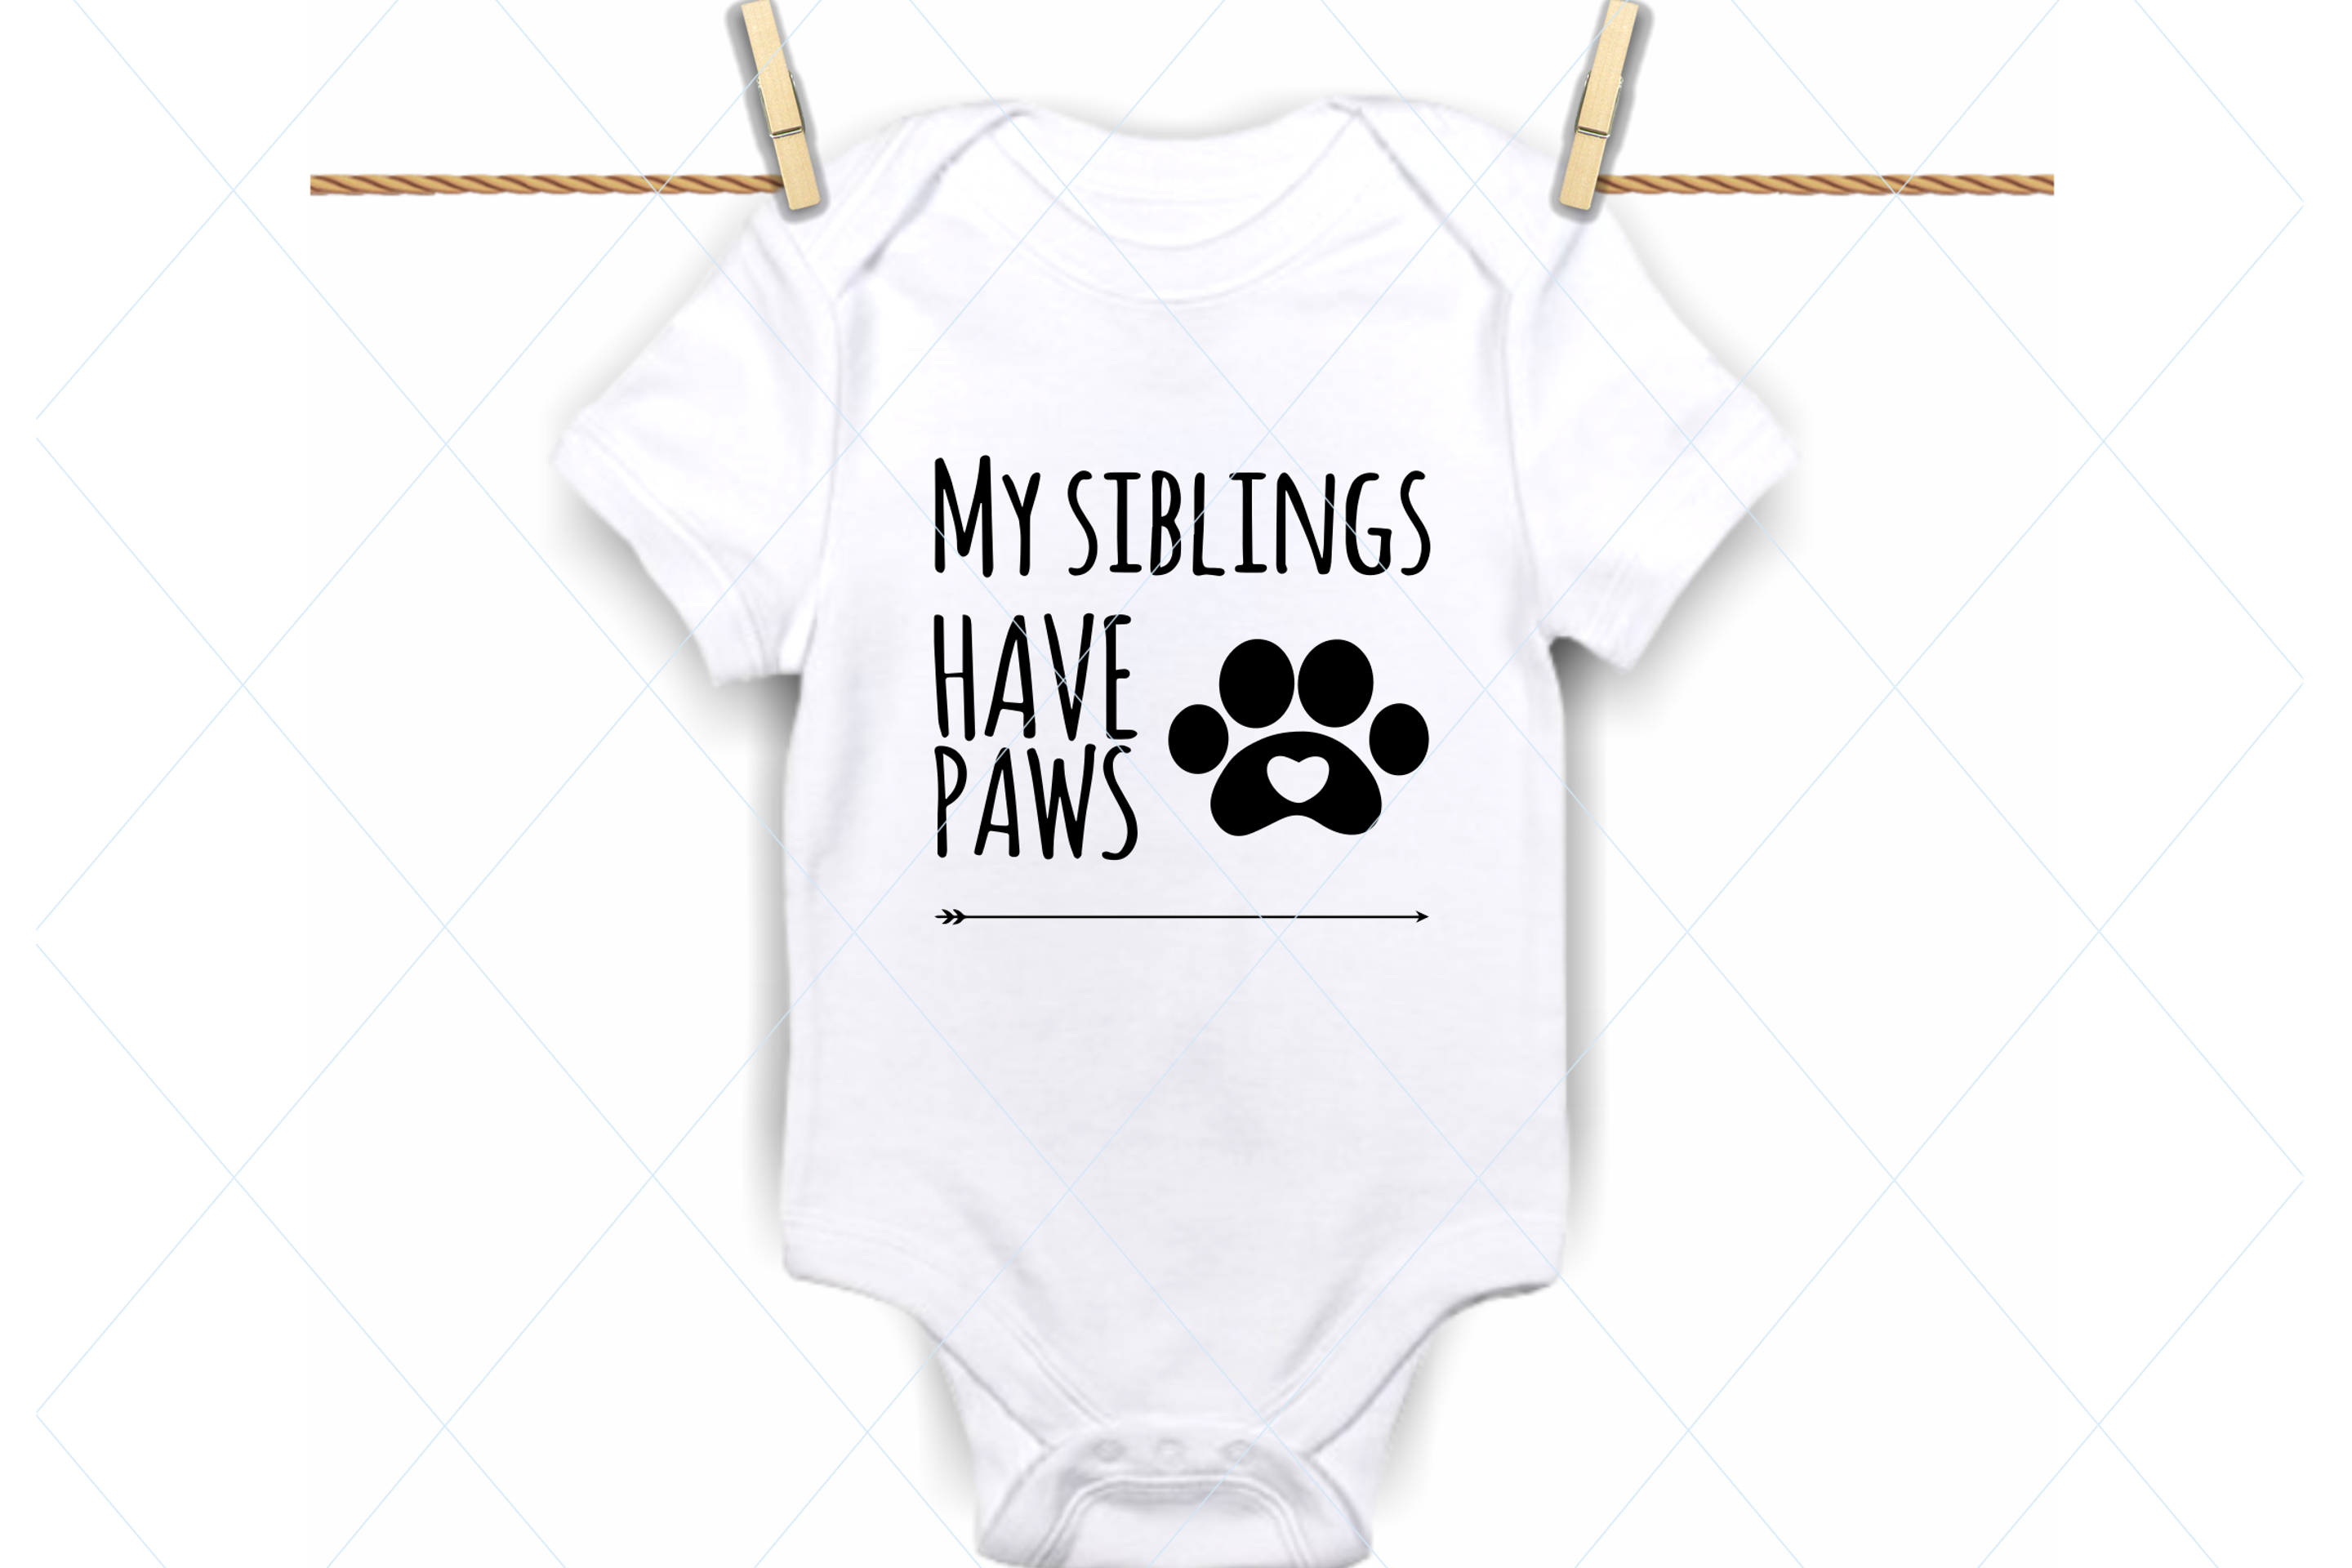 Download Free My Siblings Have Paws Svg Graphic By Thelovebyrds Creative Fabrica for Cricut Explore, Silhouette and other cutting machines.